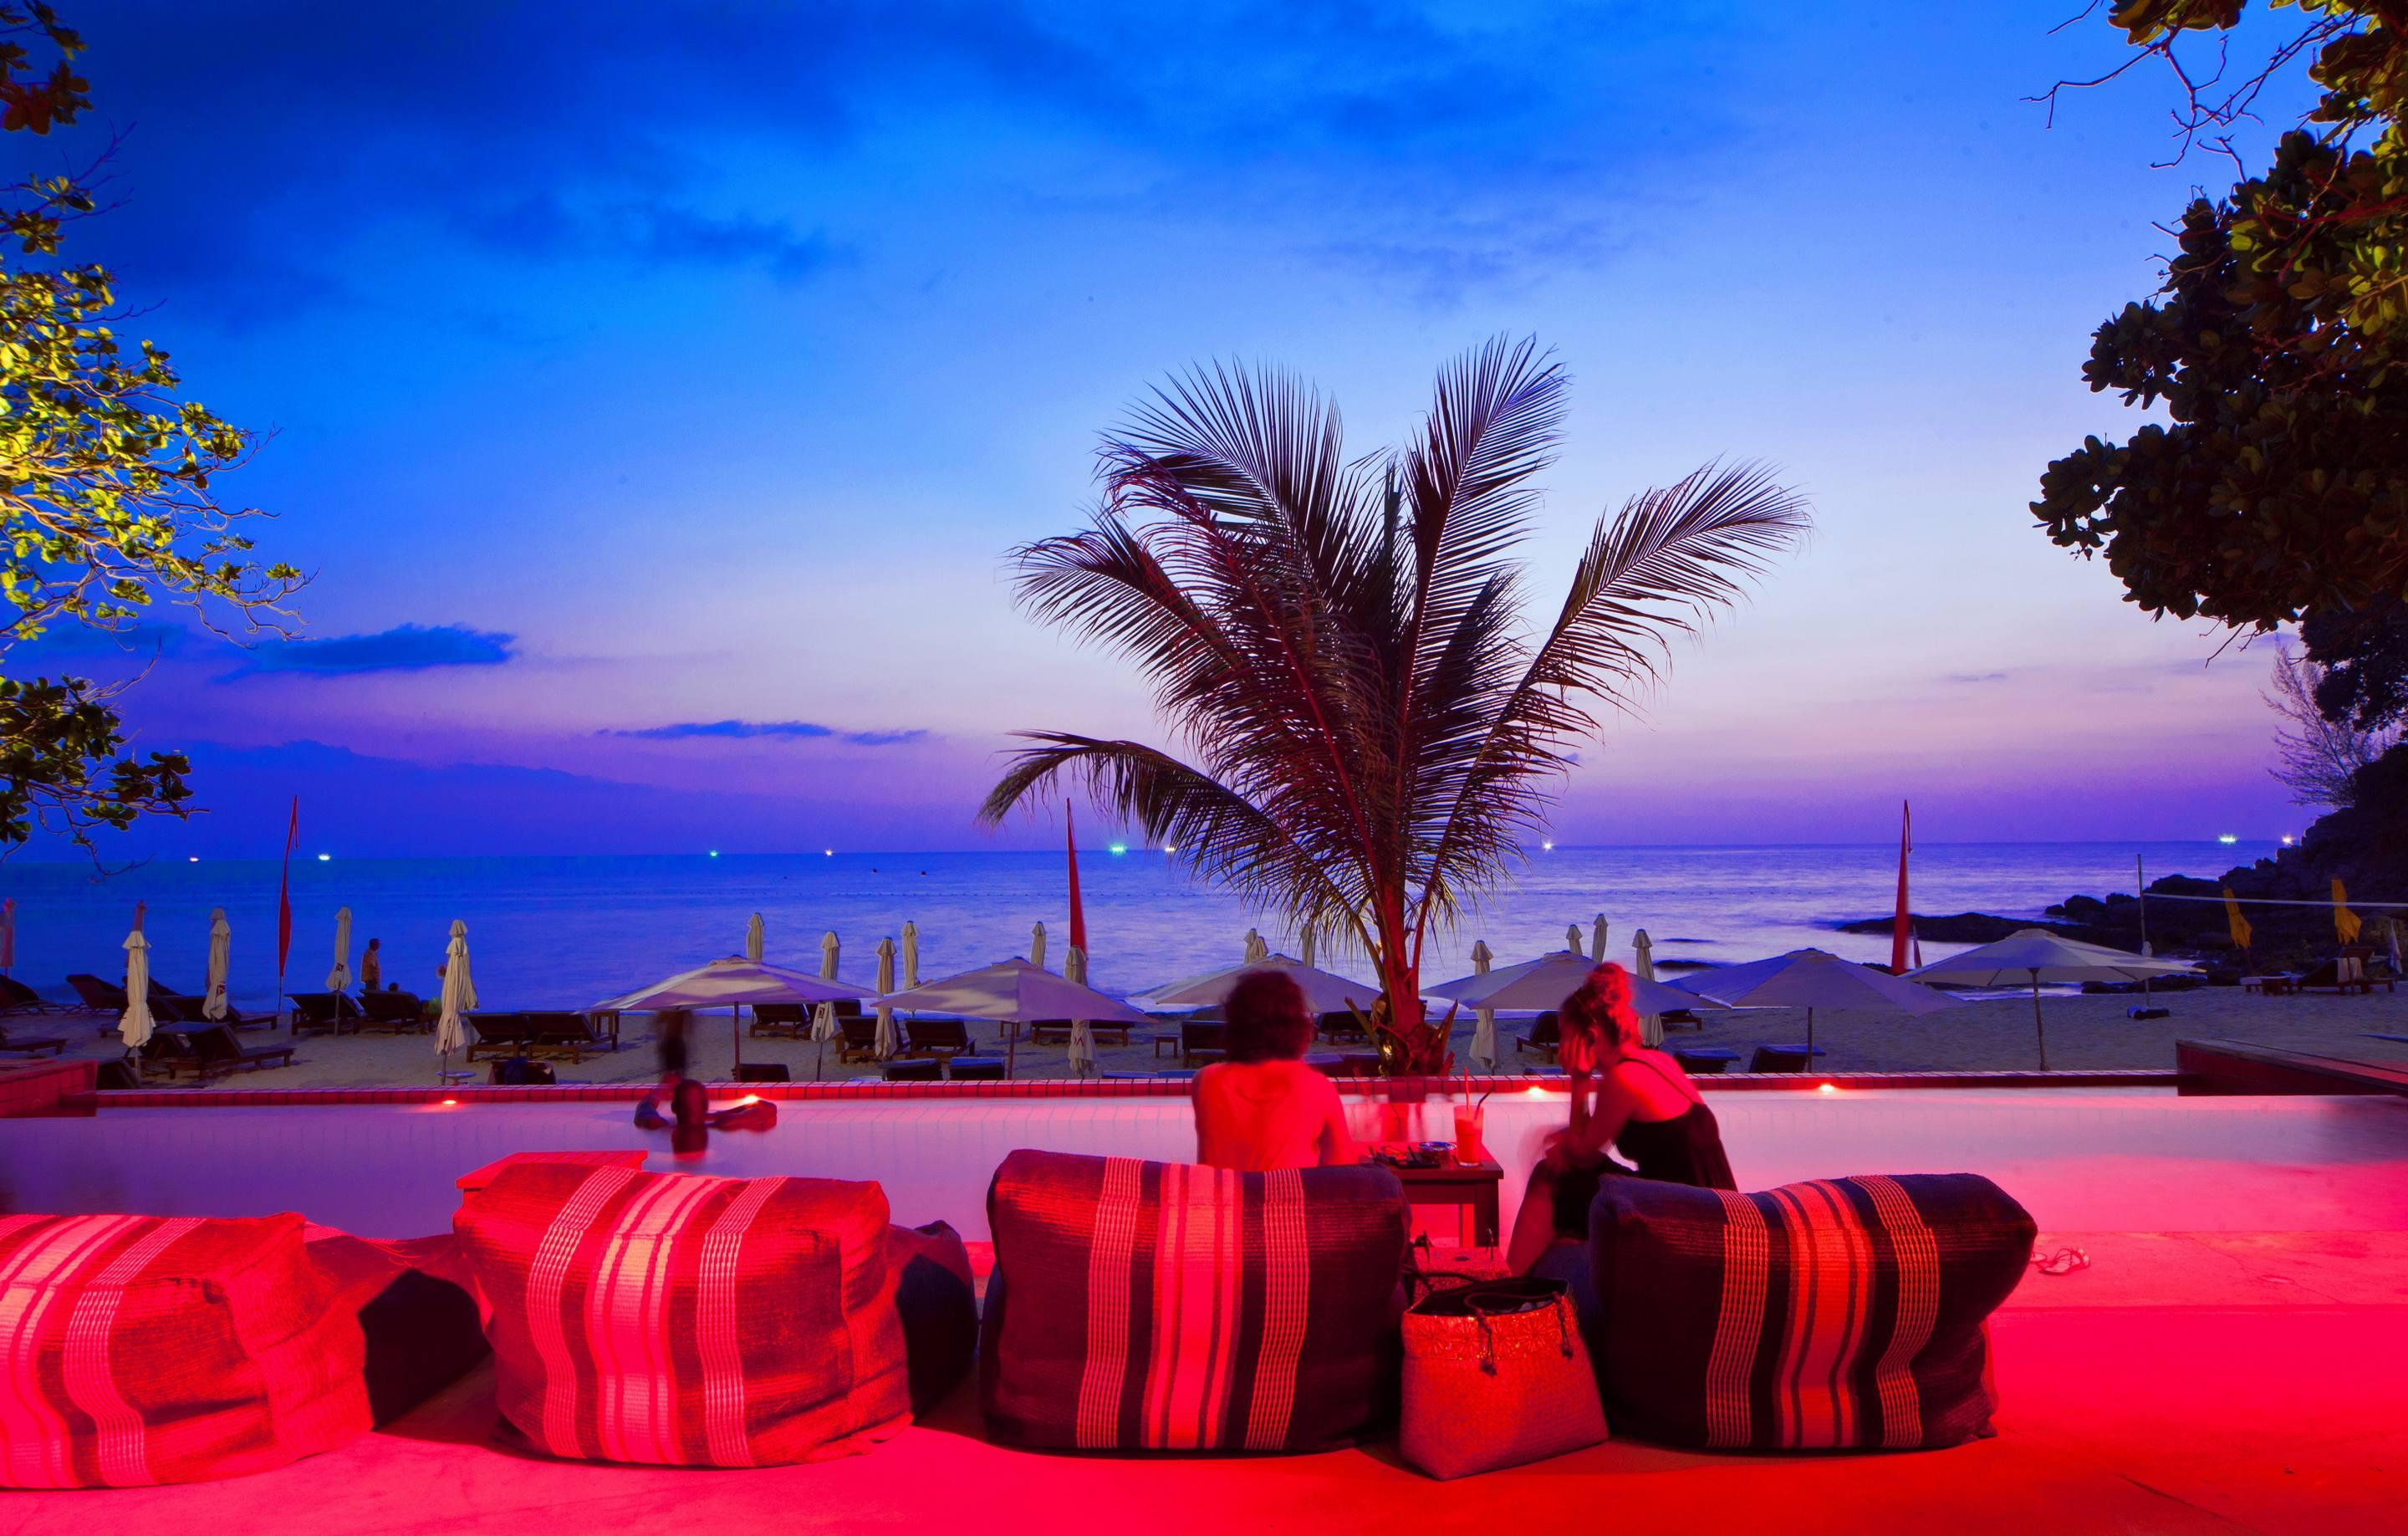 Zazada Beach Club at night